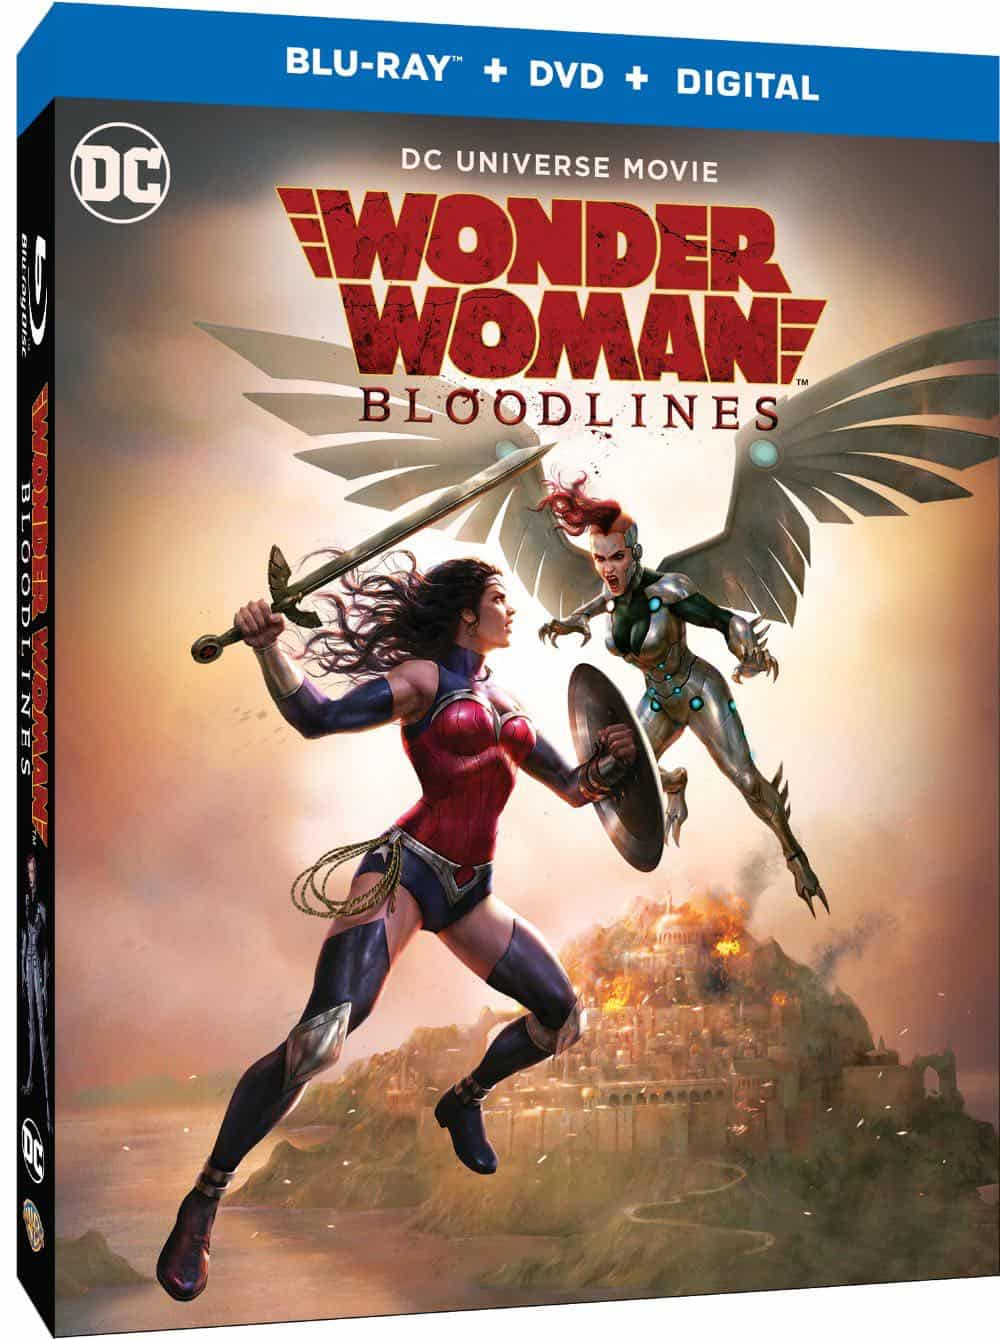 Wonder Woman Bloodlines Blu ray Cover